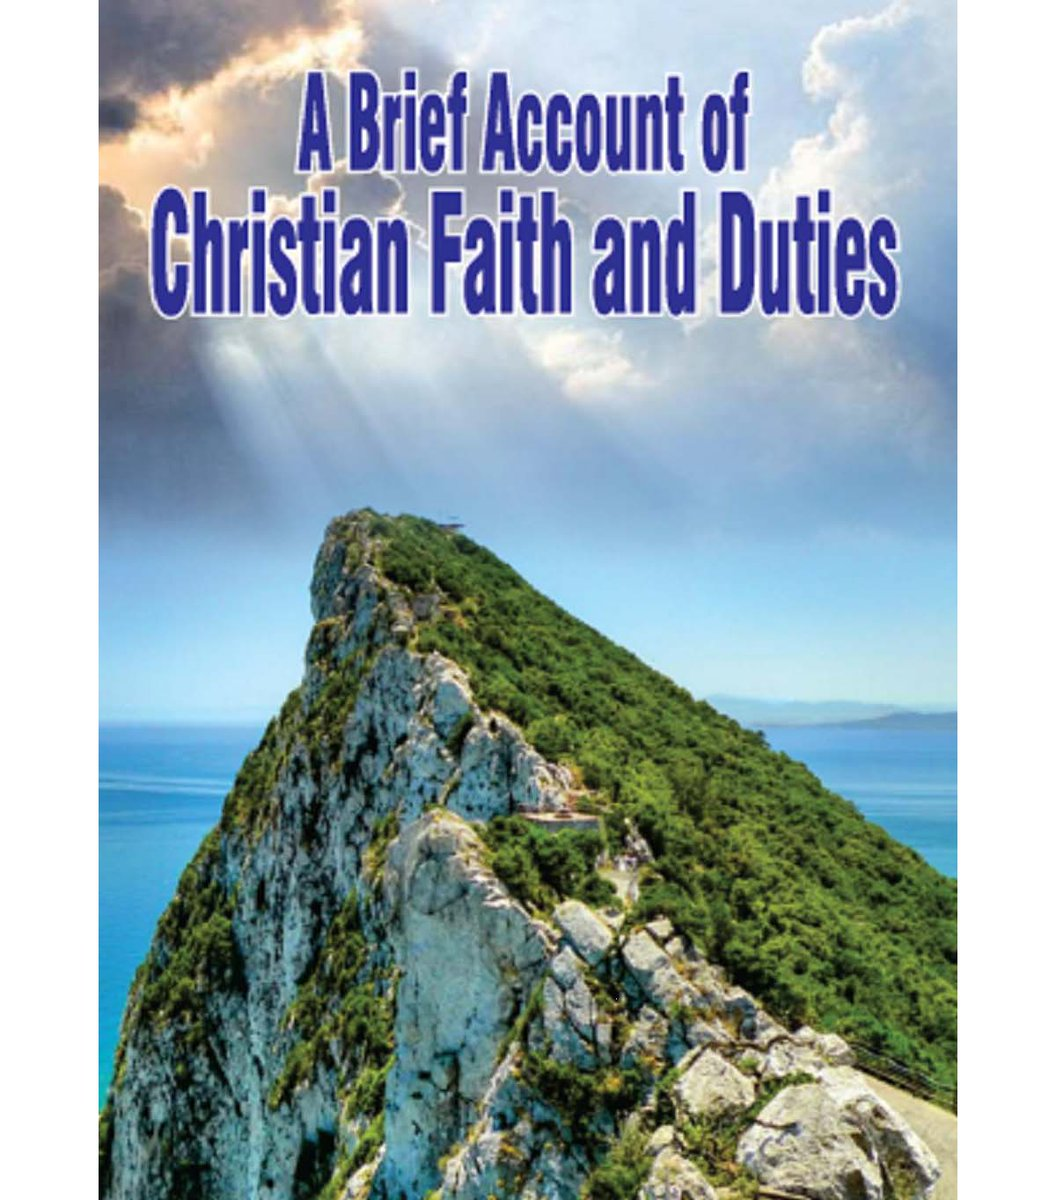 test Twitter Media - https://t.co/uXScEVzeIX A clear understanding of the doctrines in the Bible is necessary for meaningful and fruitful Christian living. The doctrines are to life what foundation is to a building.  #newbook https://t.co/1Li2FXh8wD